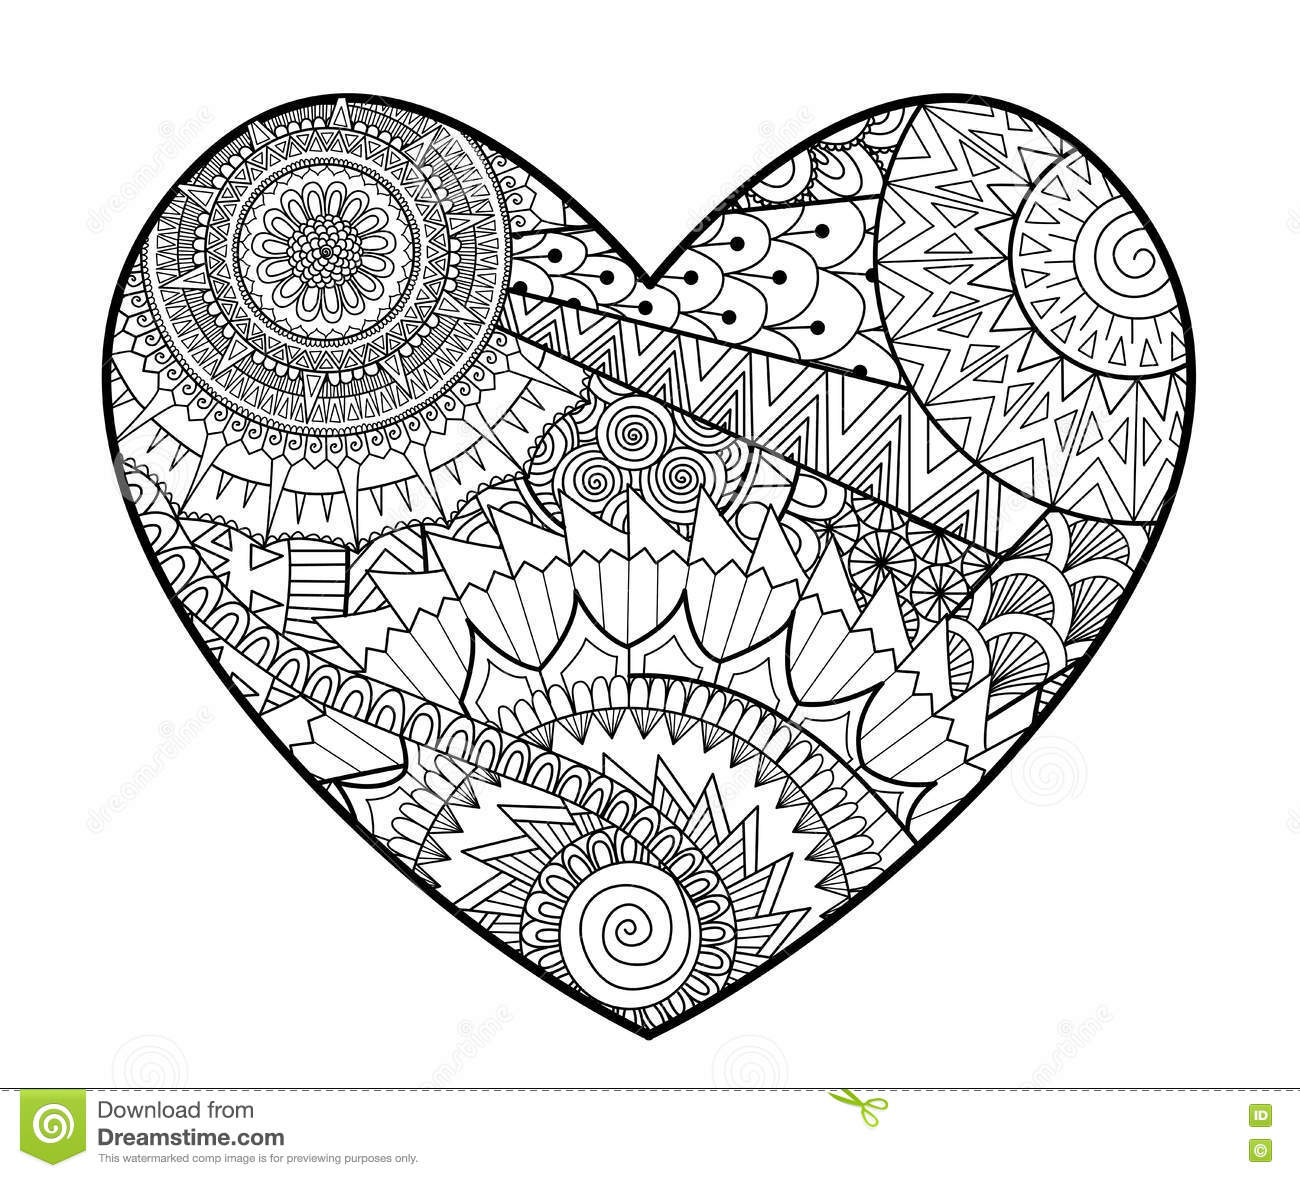 coloring pages for adults heart free printable heart coloring pages for kids cool2bkids heart for adults coloring pages